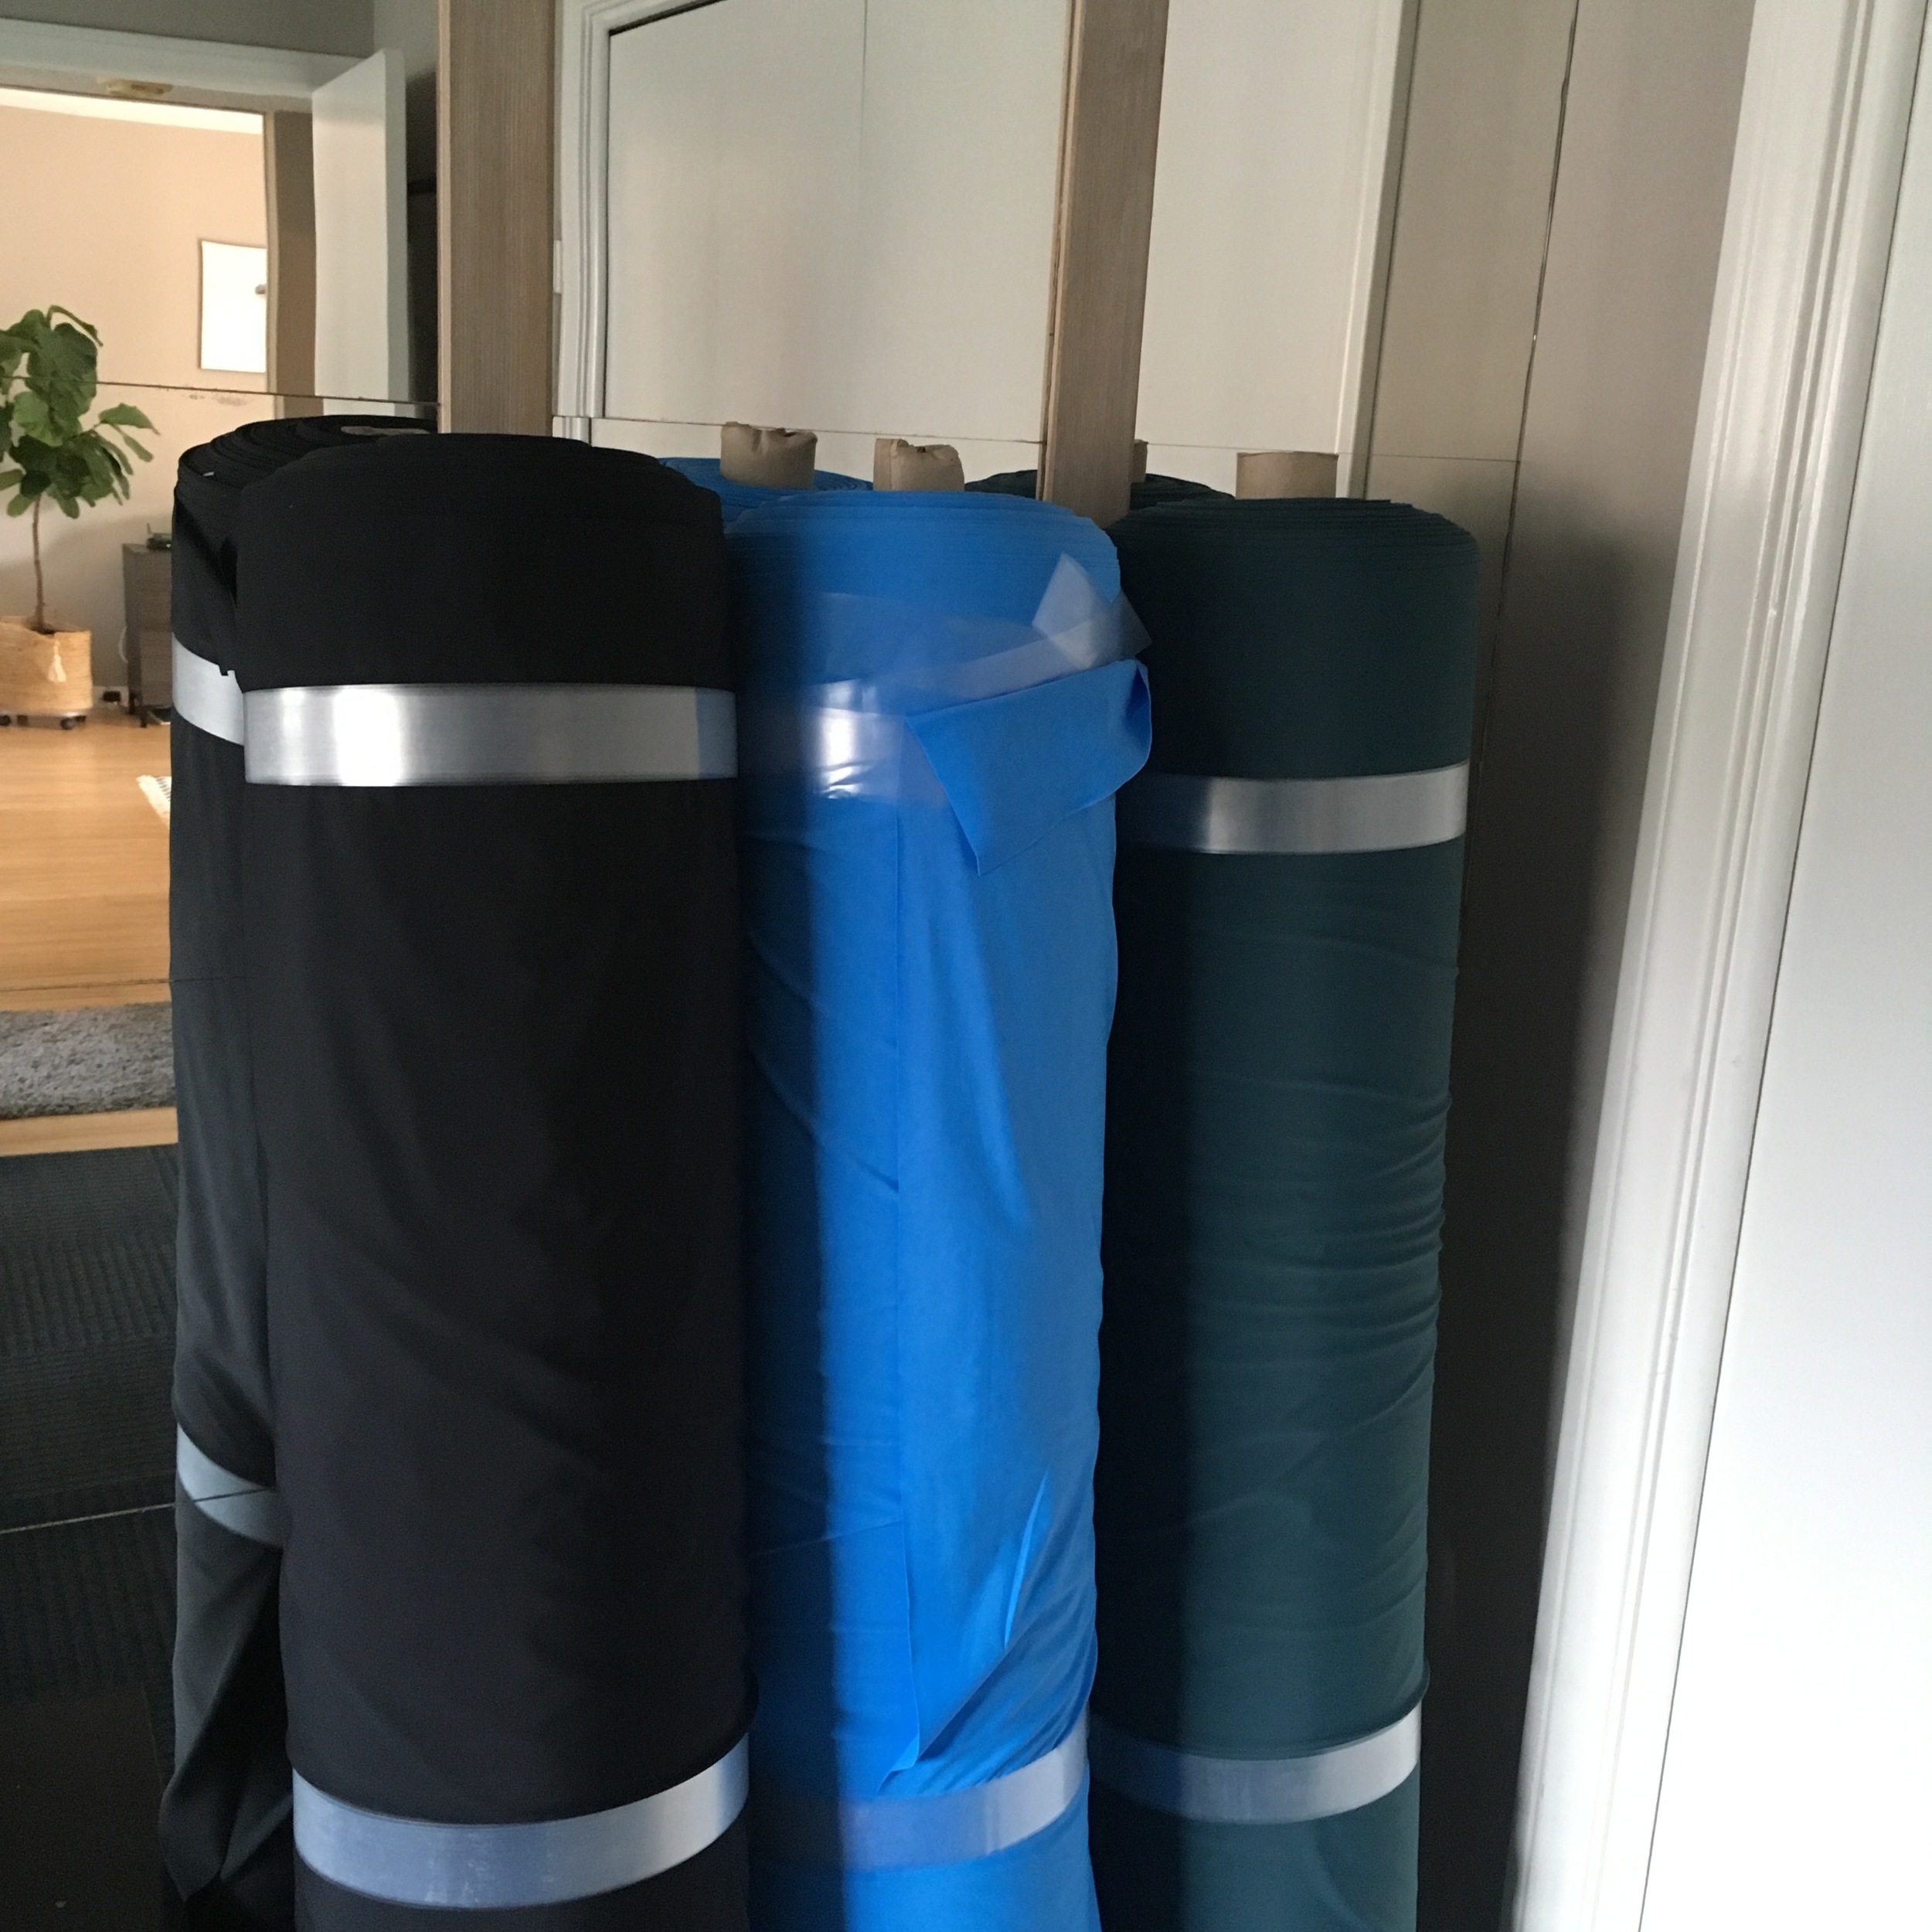 Econyl by Aquafil Group in Jet Black; Sky Blue; Deep Sea Green.